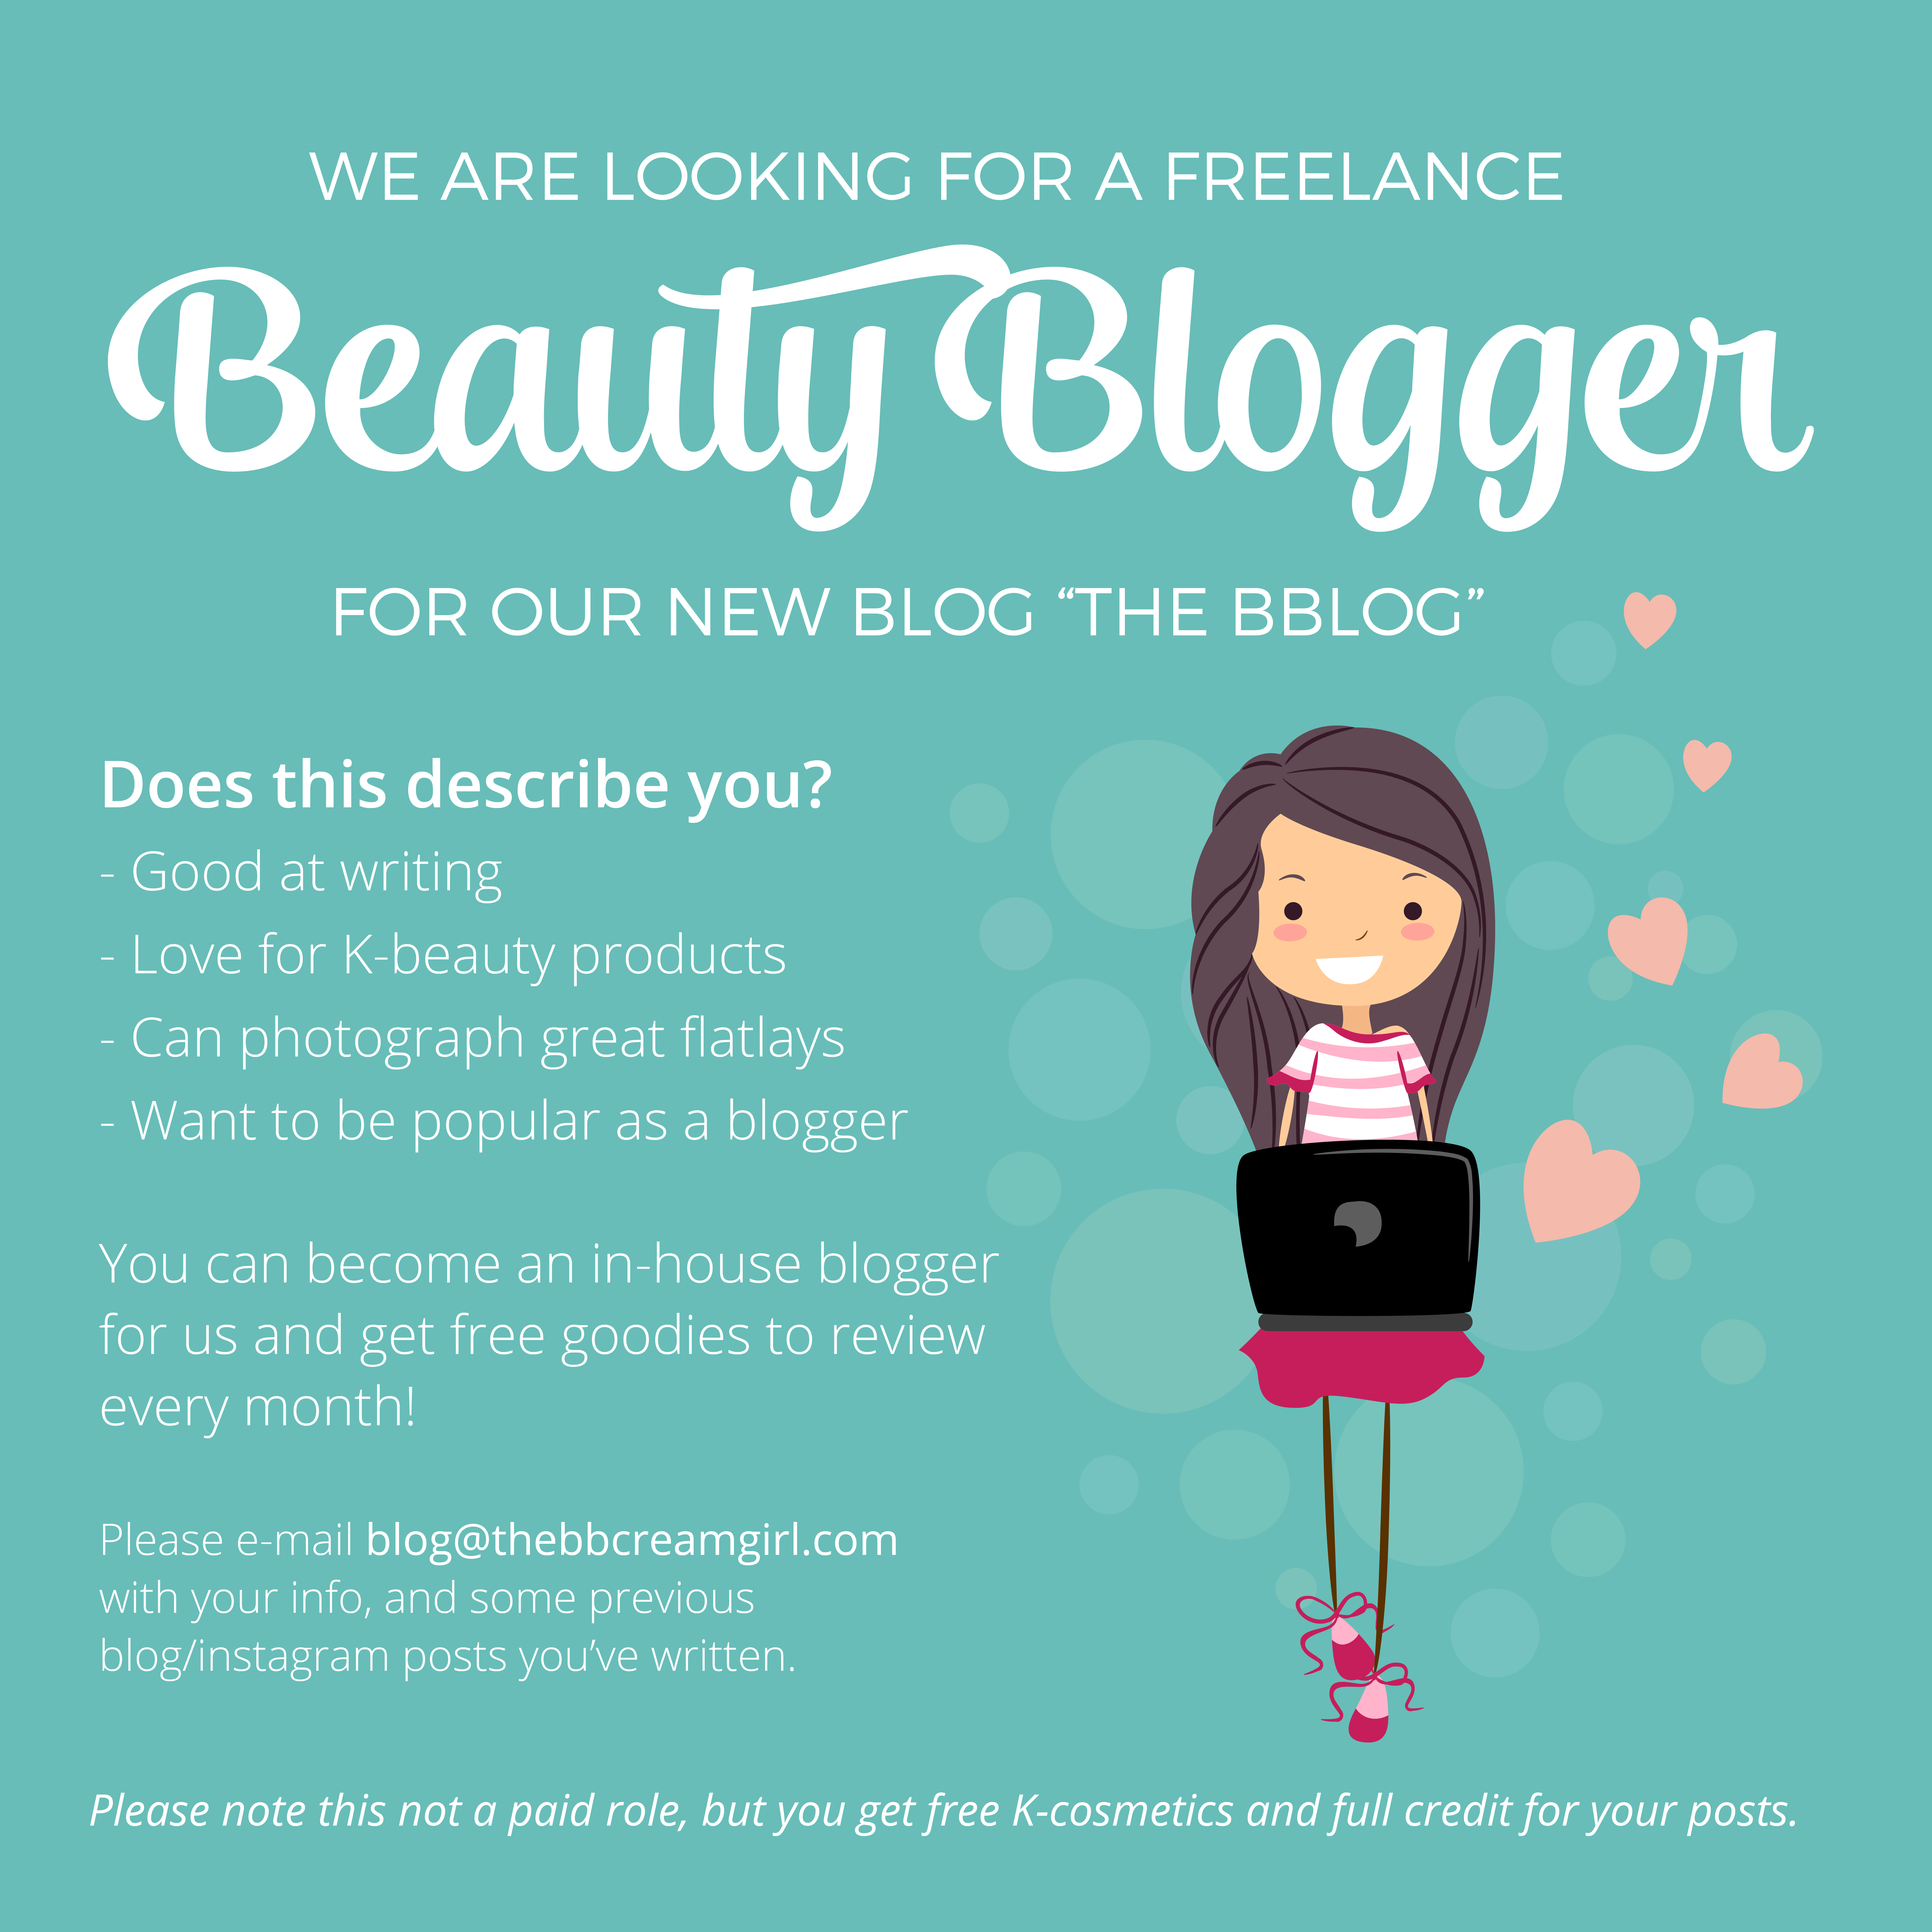 Listen up ladies! We are looking for a beauty #blogger to write for